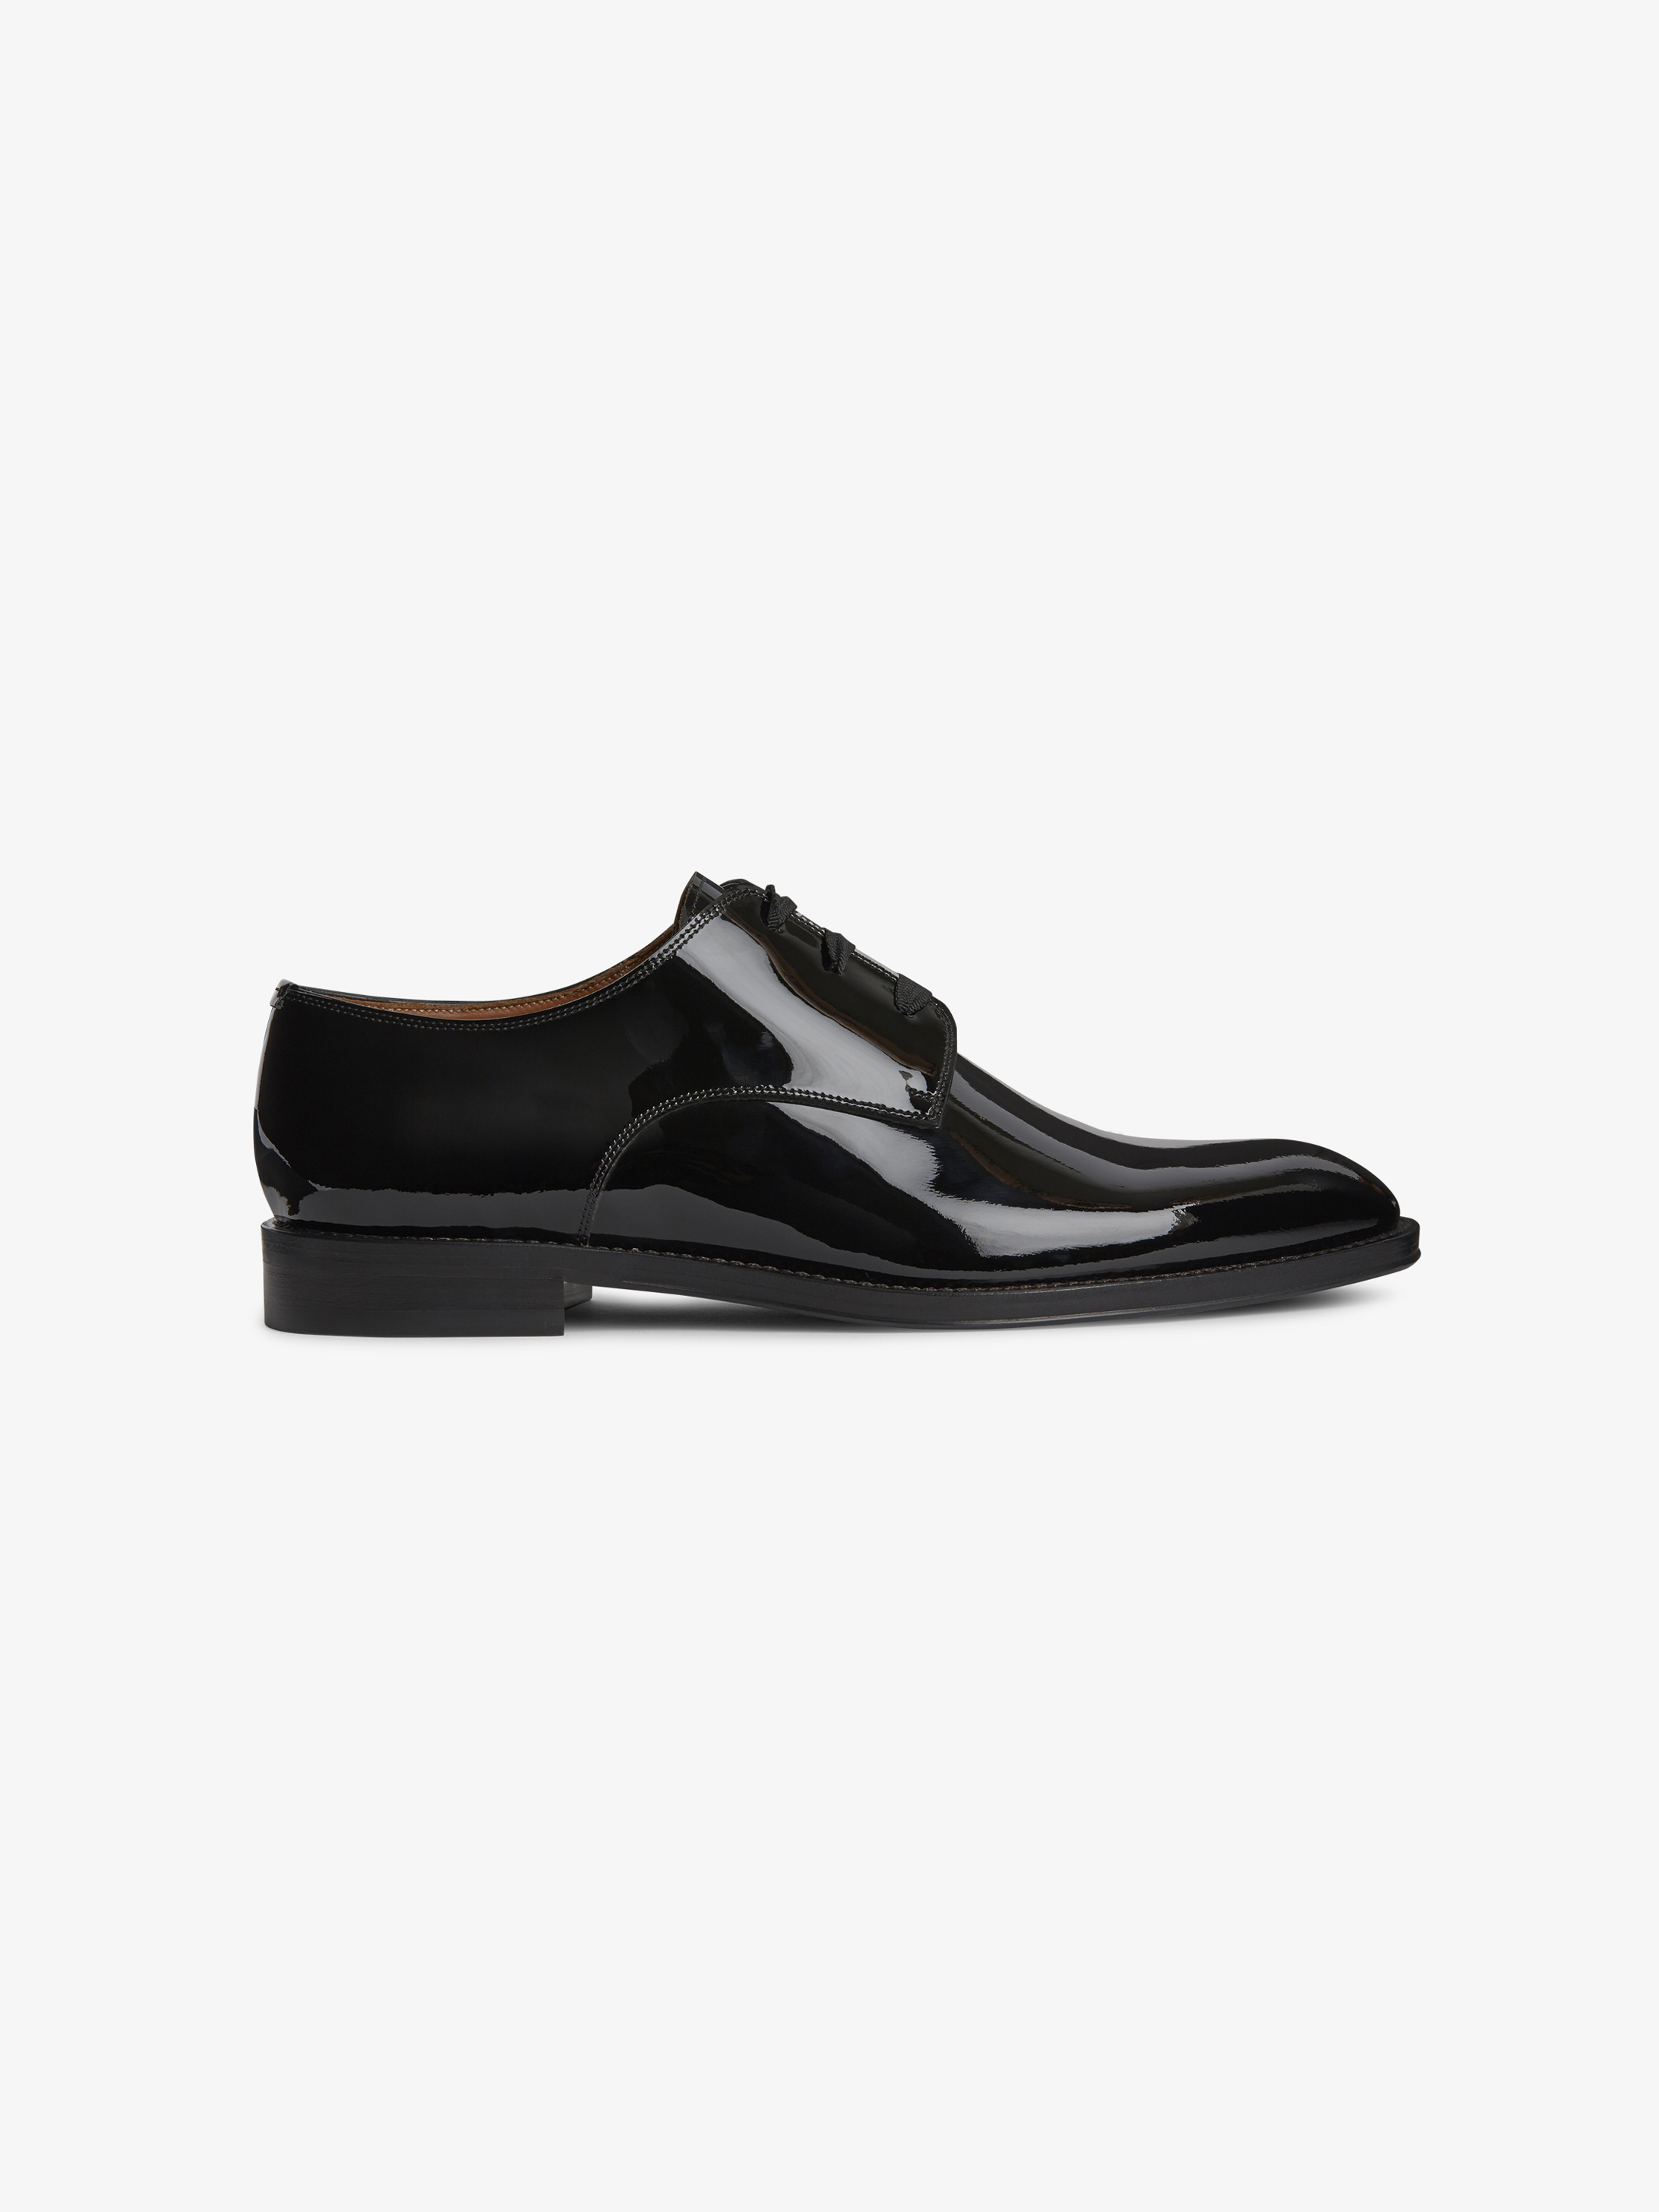 Derbies lace-up shoes in patent leather